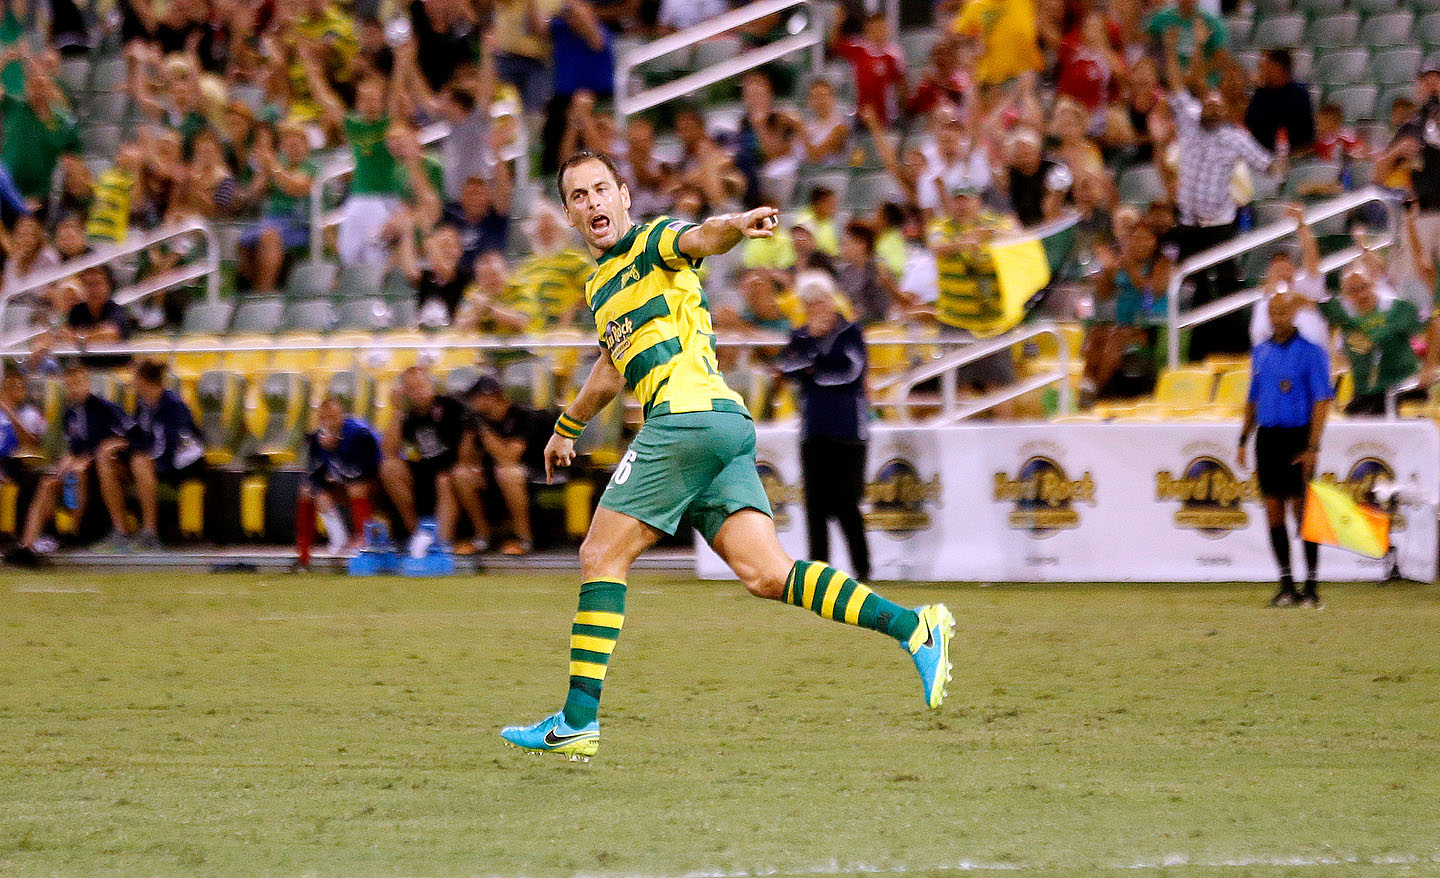 Former Chelsea and Liverpool midfielder Joe Cole scores screamer for Tampa Bay Rowdies